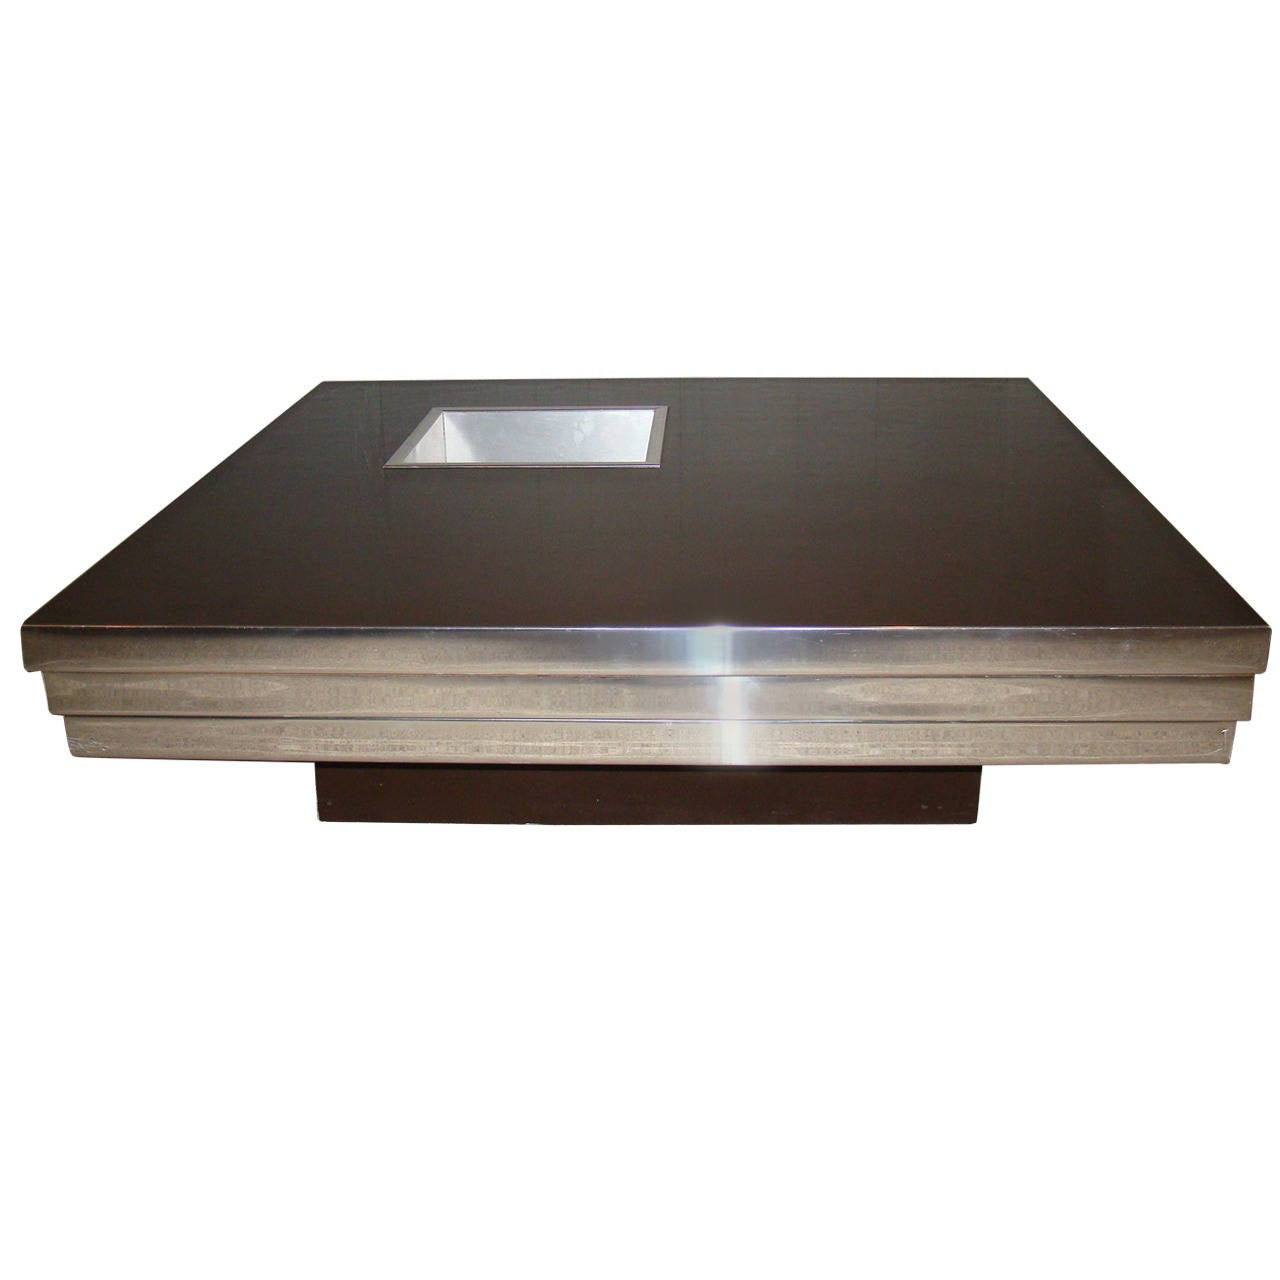 Stunning Stainless Steel Coffee Table By Pierre Cardin At 1stdibs